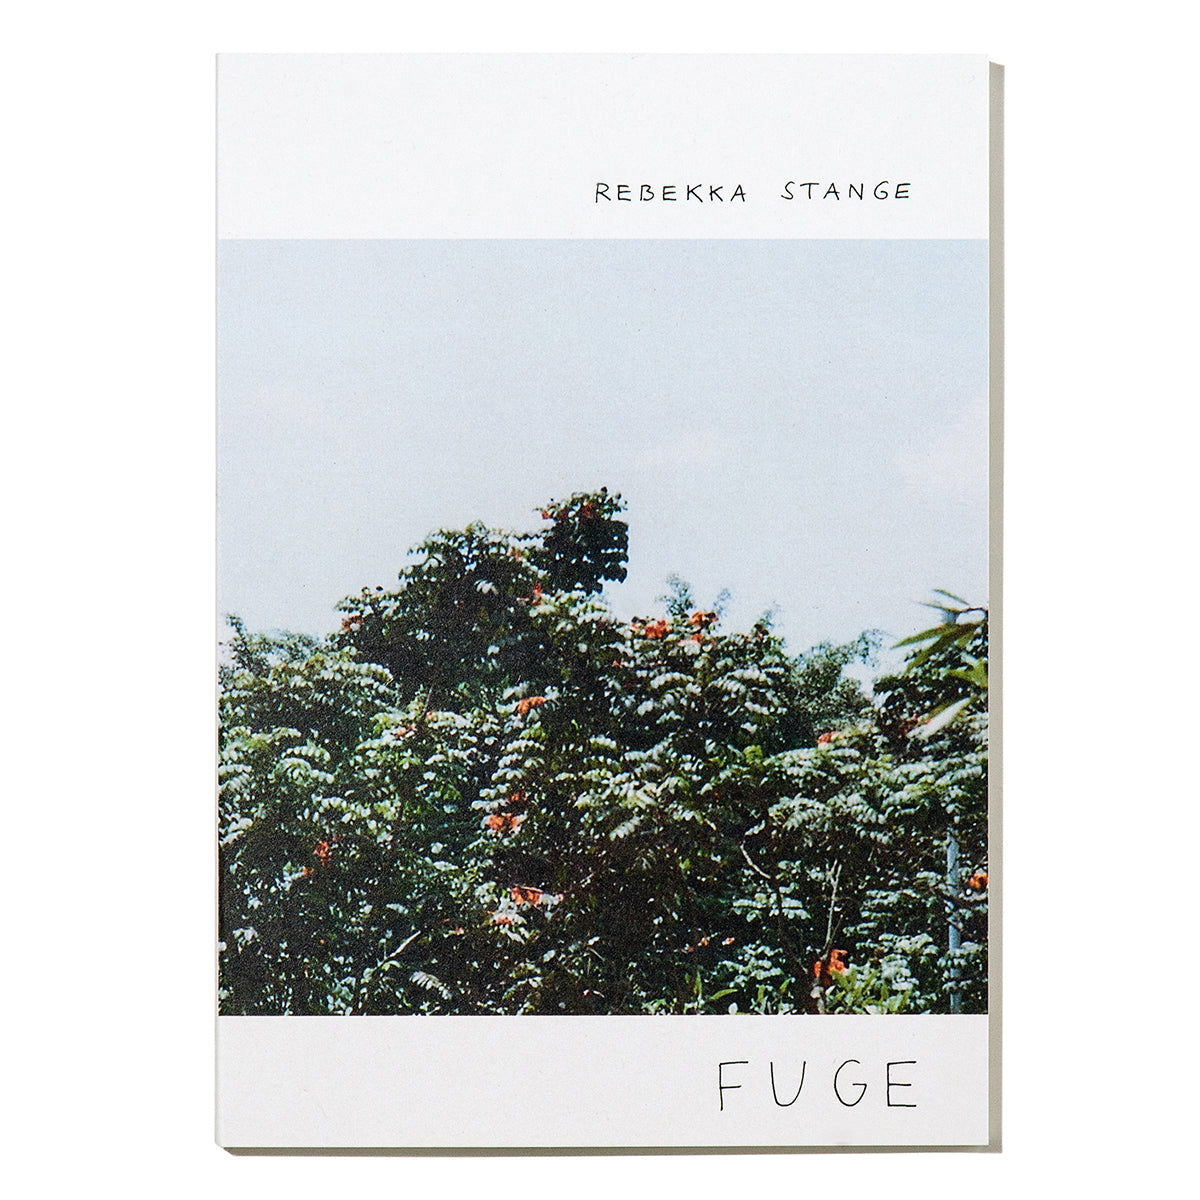 FUGE - signed copy